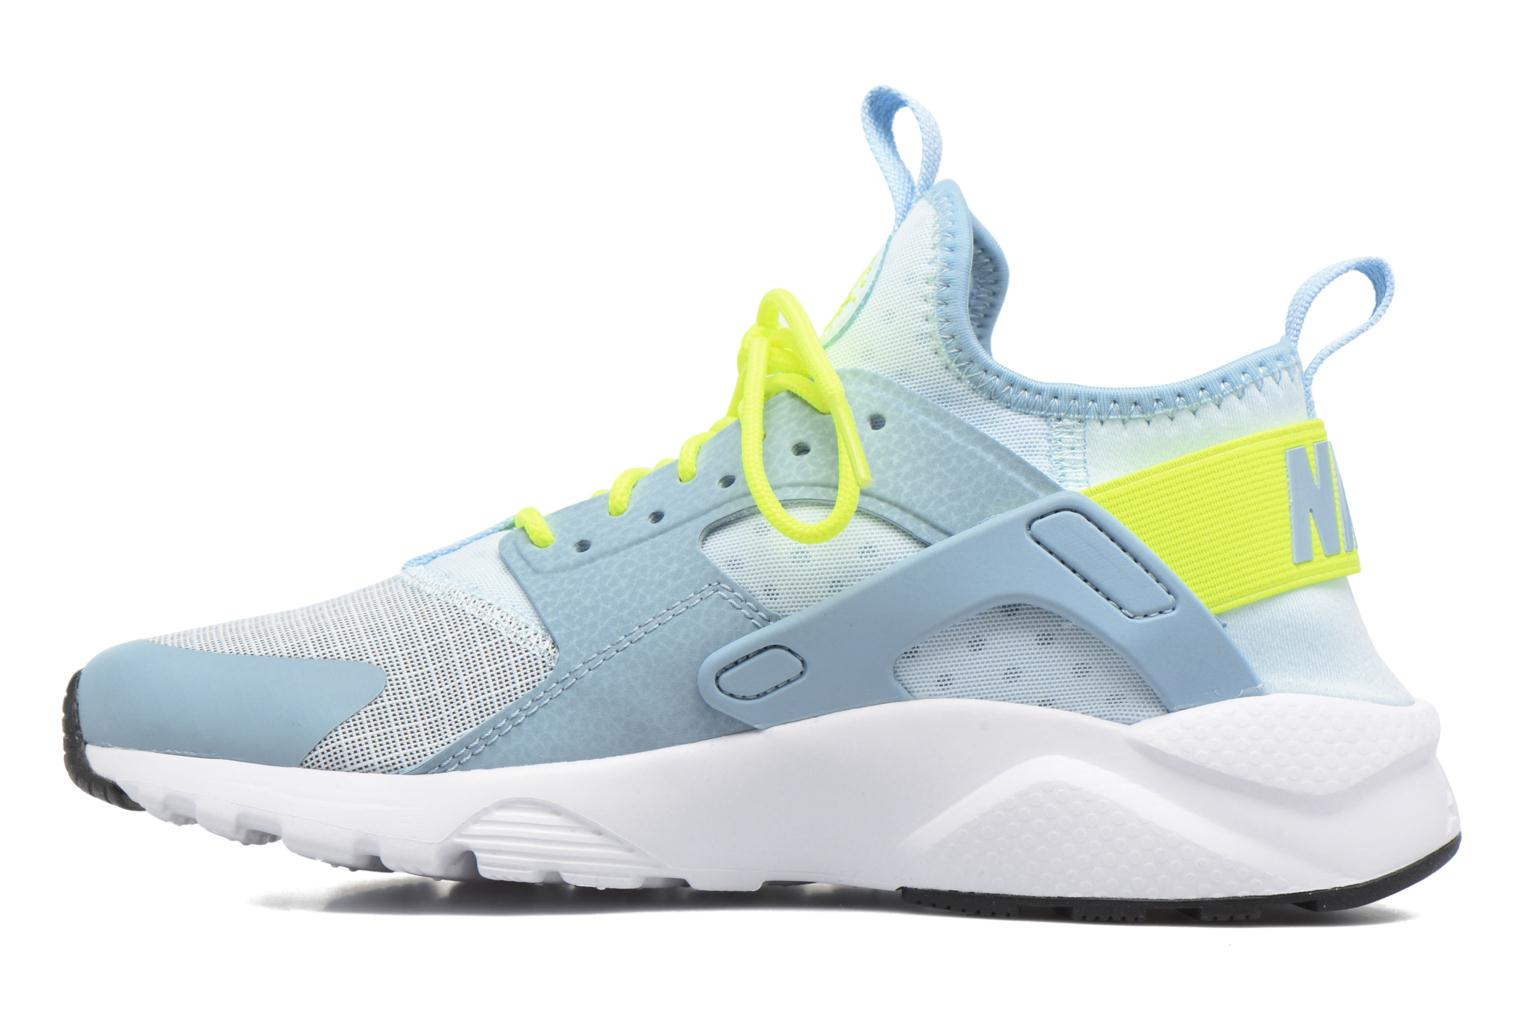 Nike Air Huarache Run Ultra (Gs) Glacier Blue/Volt-Mica Blue-White